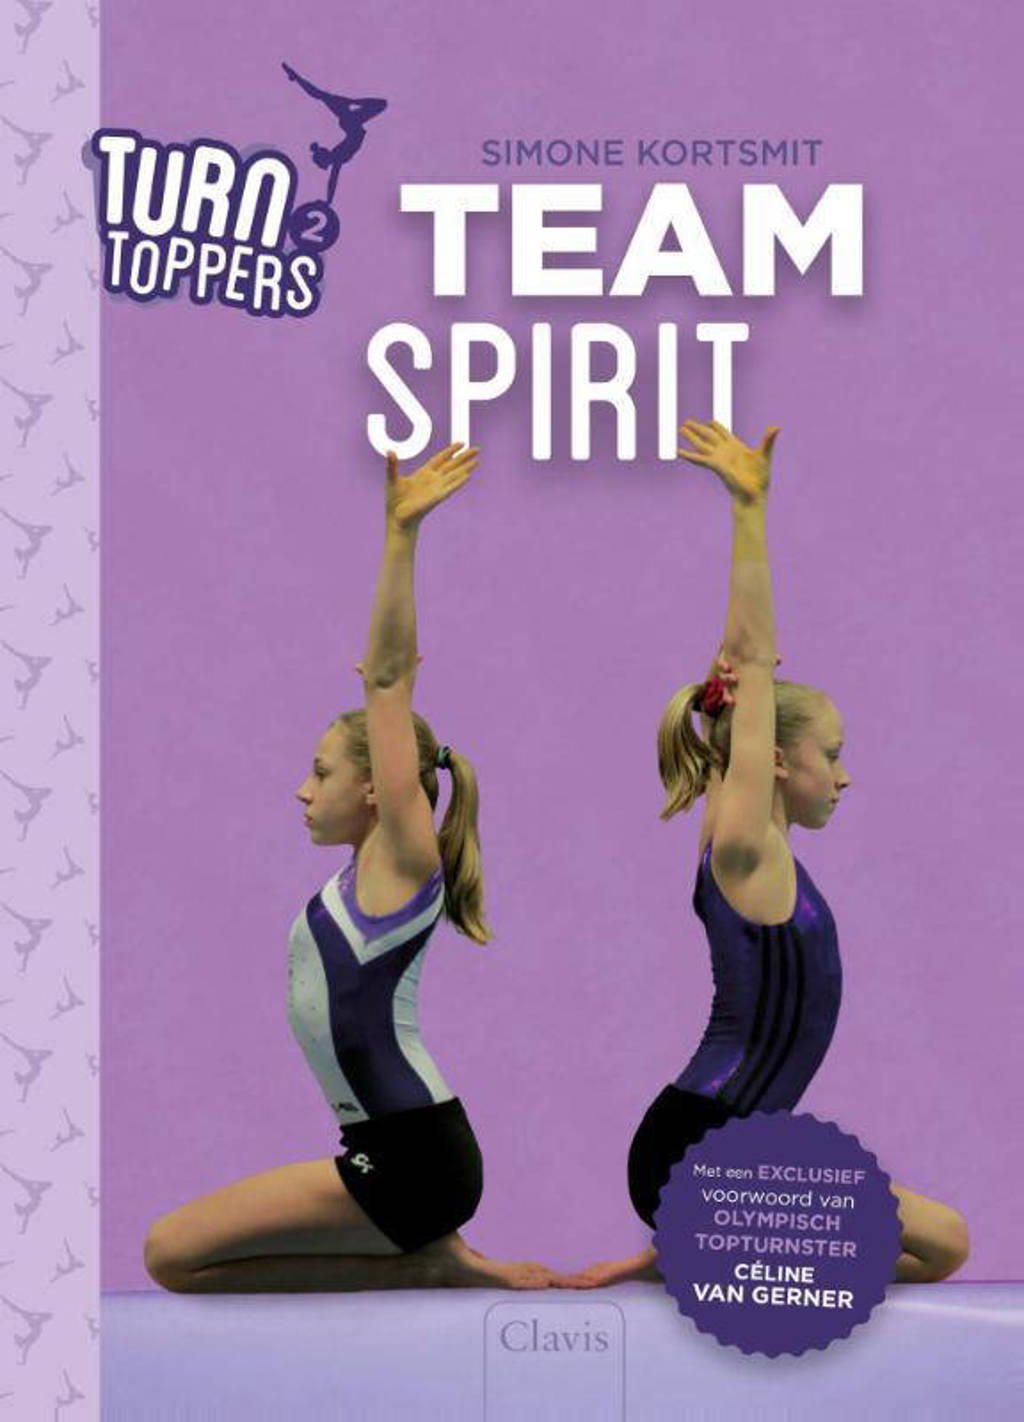 Turn toppers: Teamspirit - Simone Kortsmit